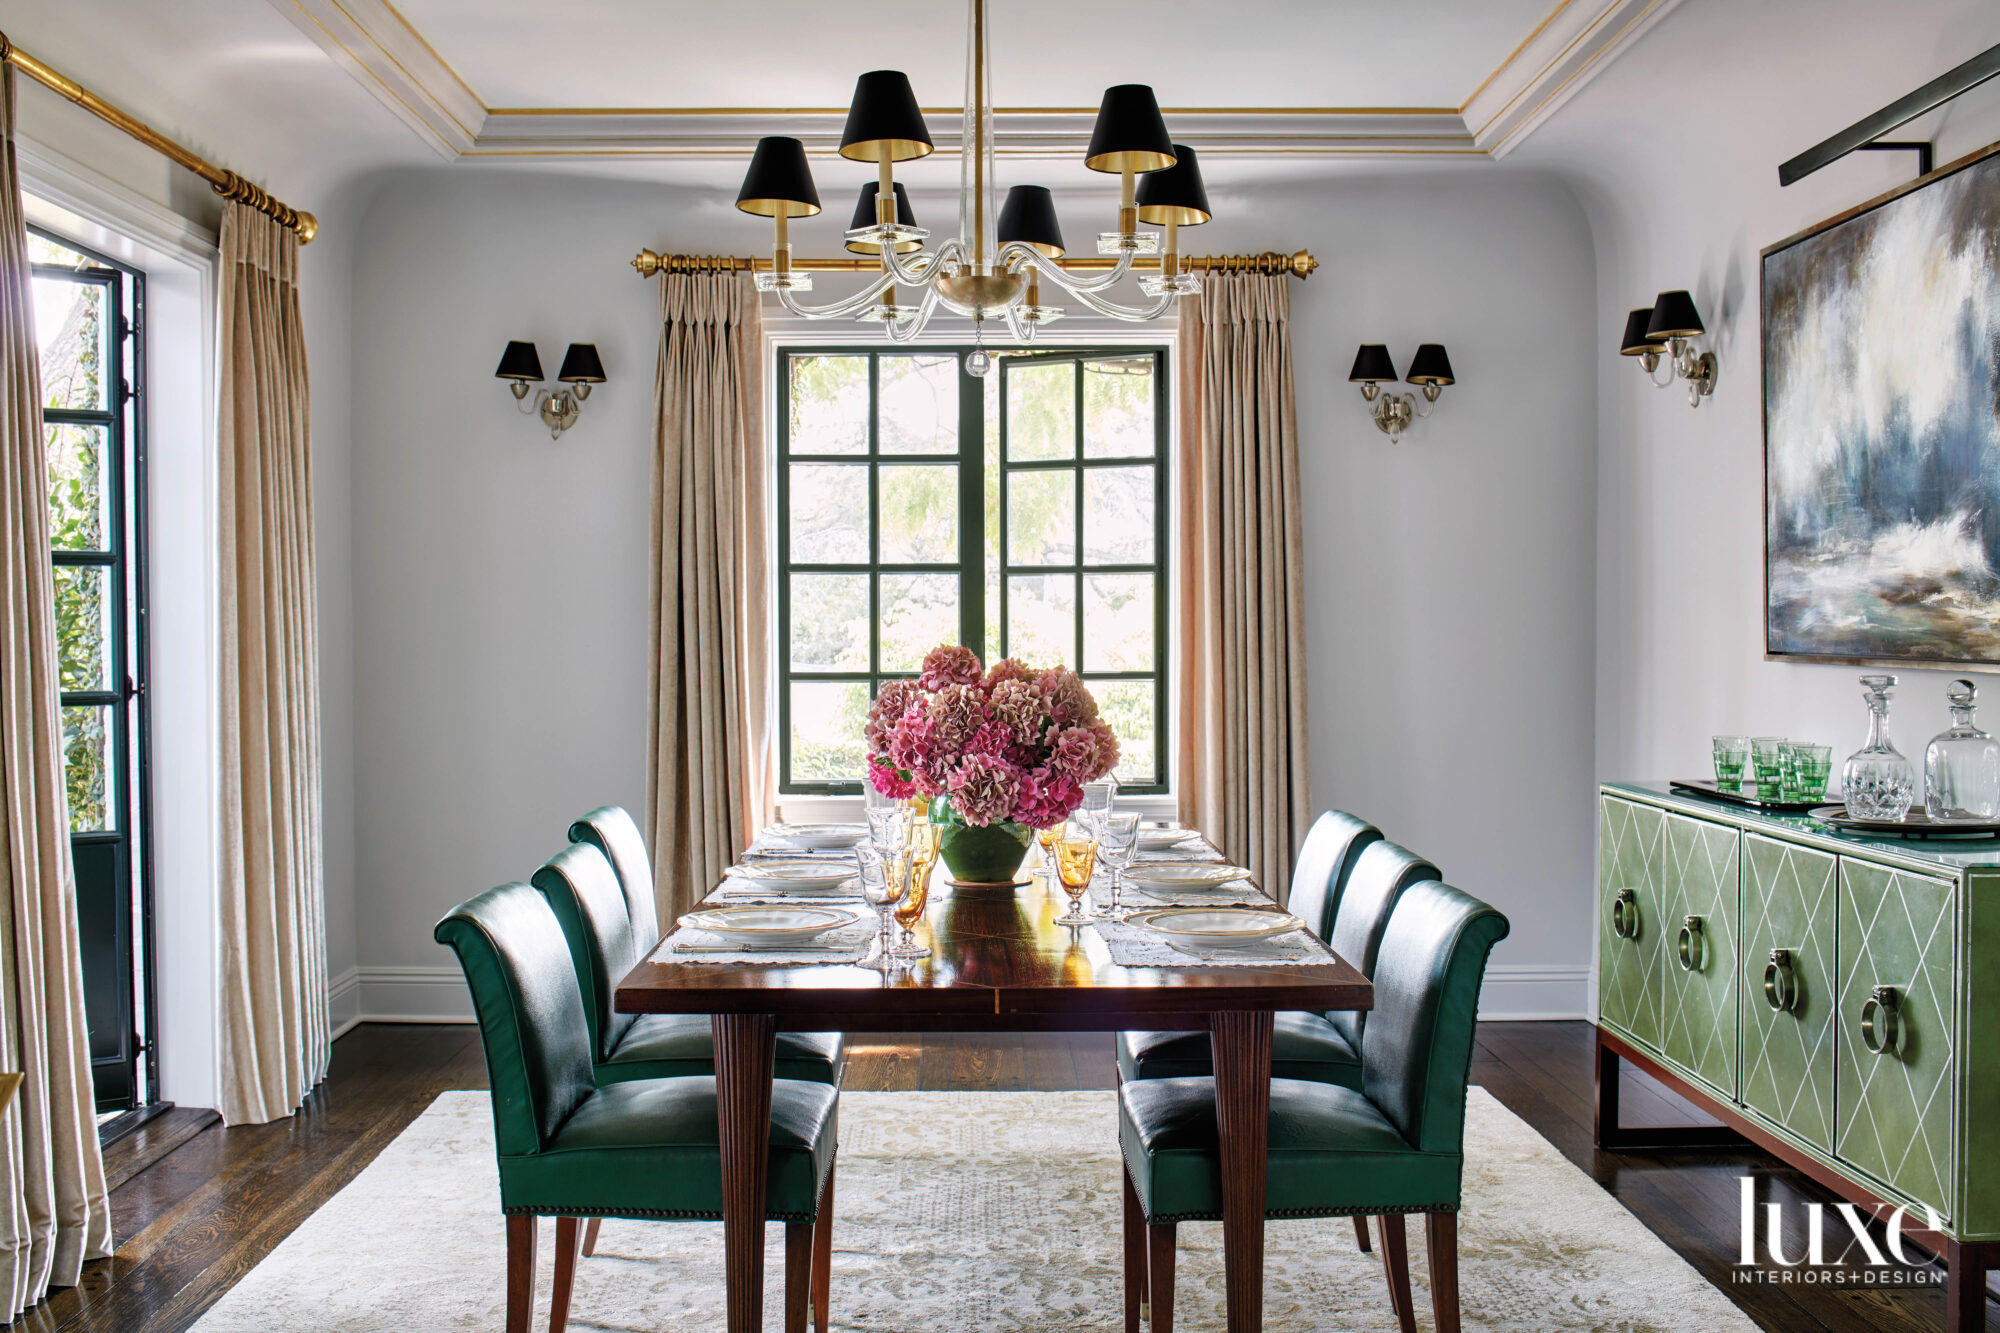 Dining room with green chairs...